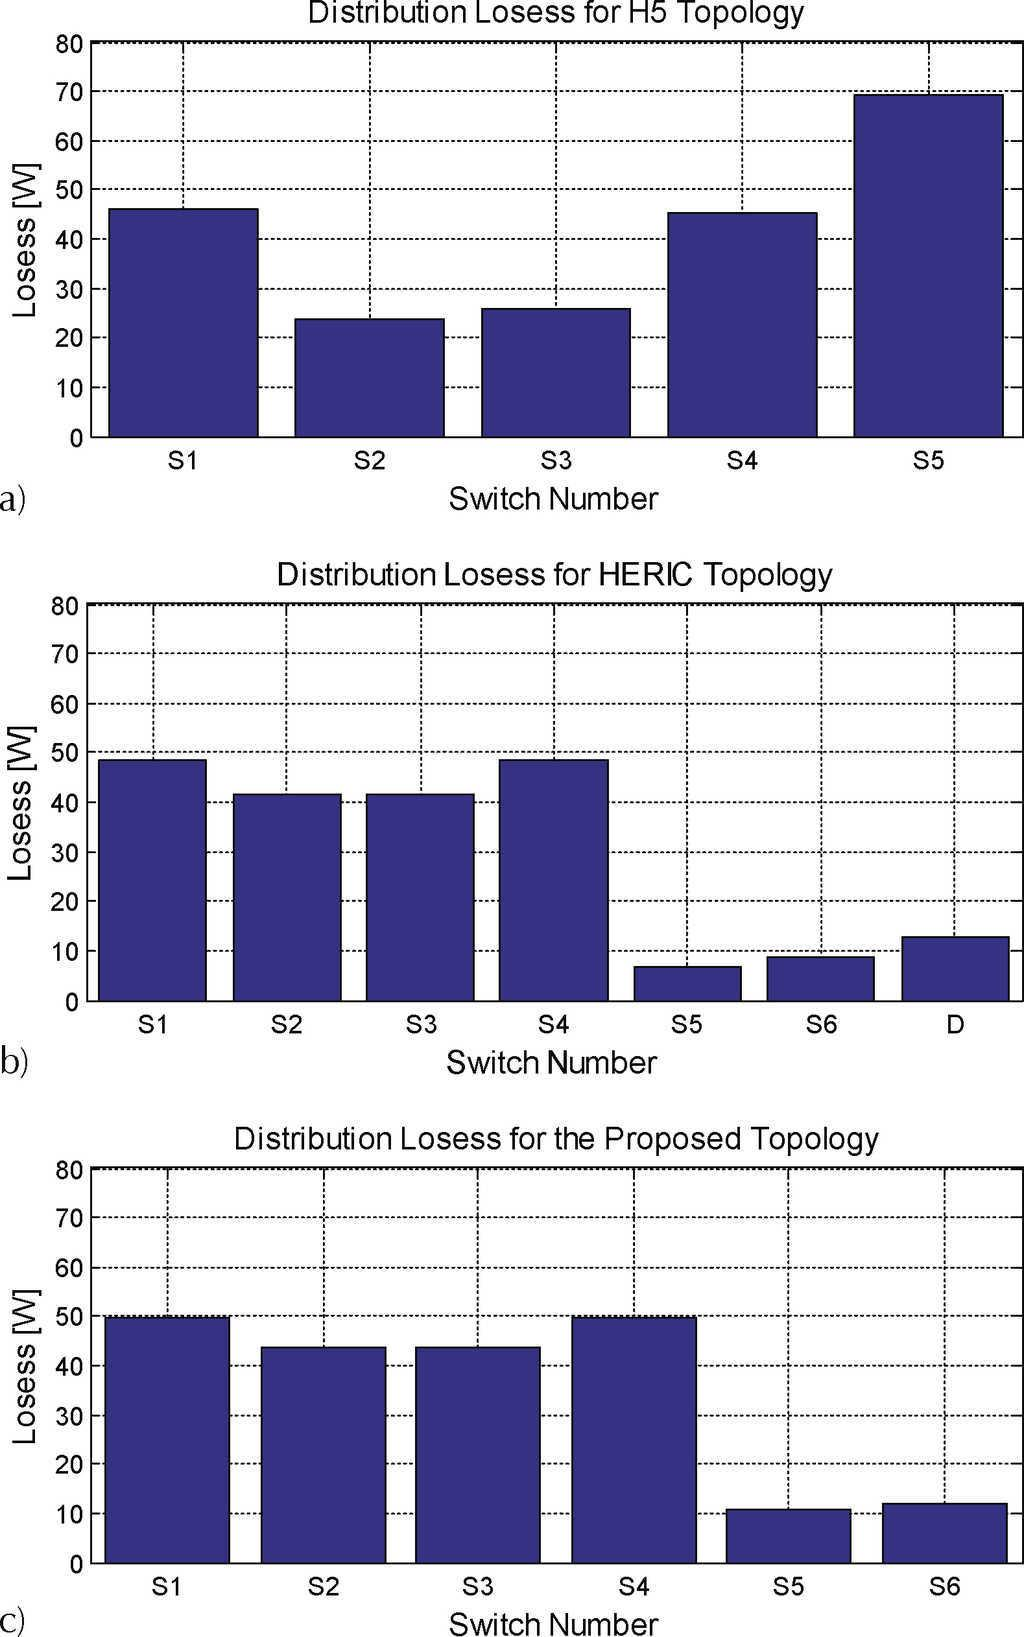 High Efficiency Single Phase Transformer Less Inverter For Diagram 7 A Frequency Transformerbased Singlephase Distribution Of Power Losses Among Switches In The Three Topologies